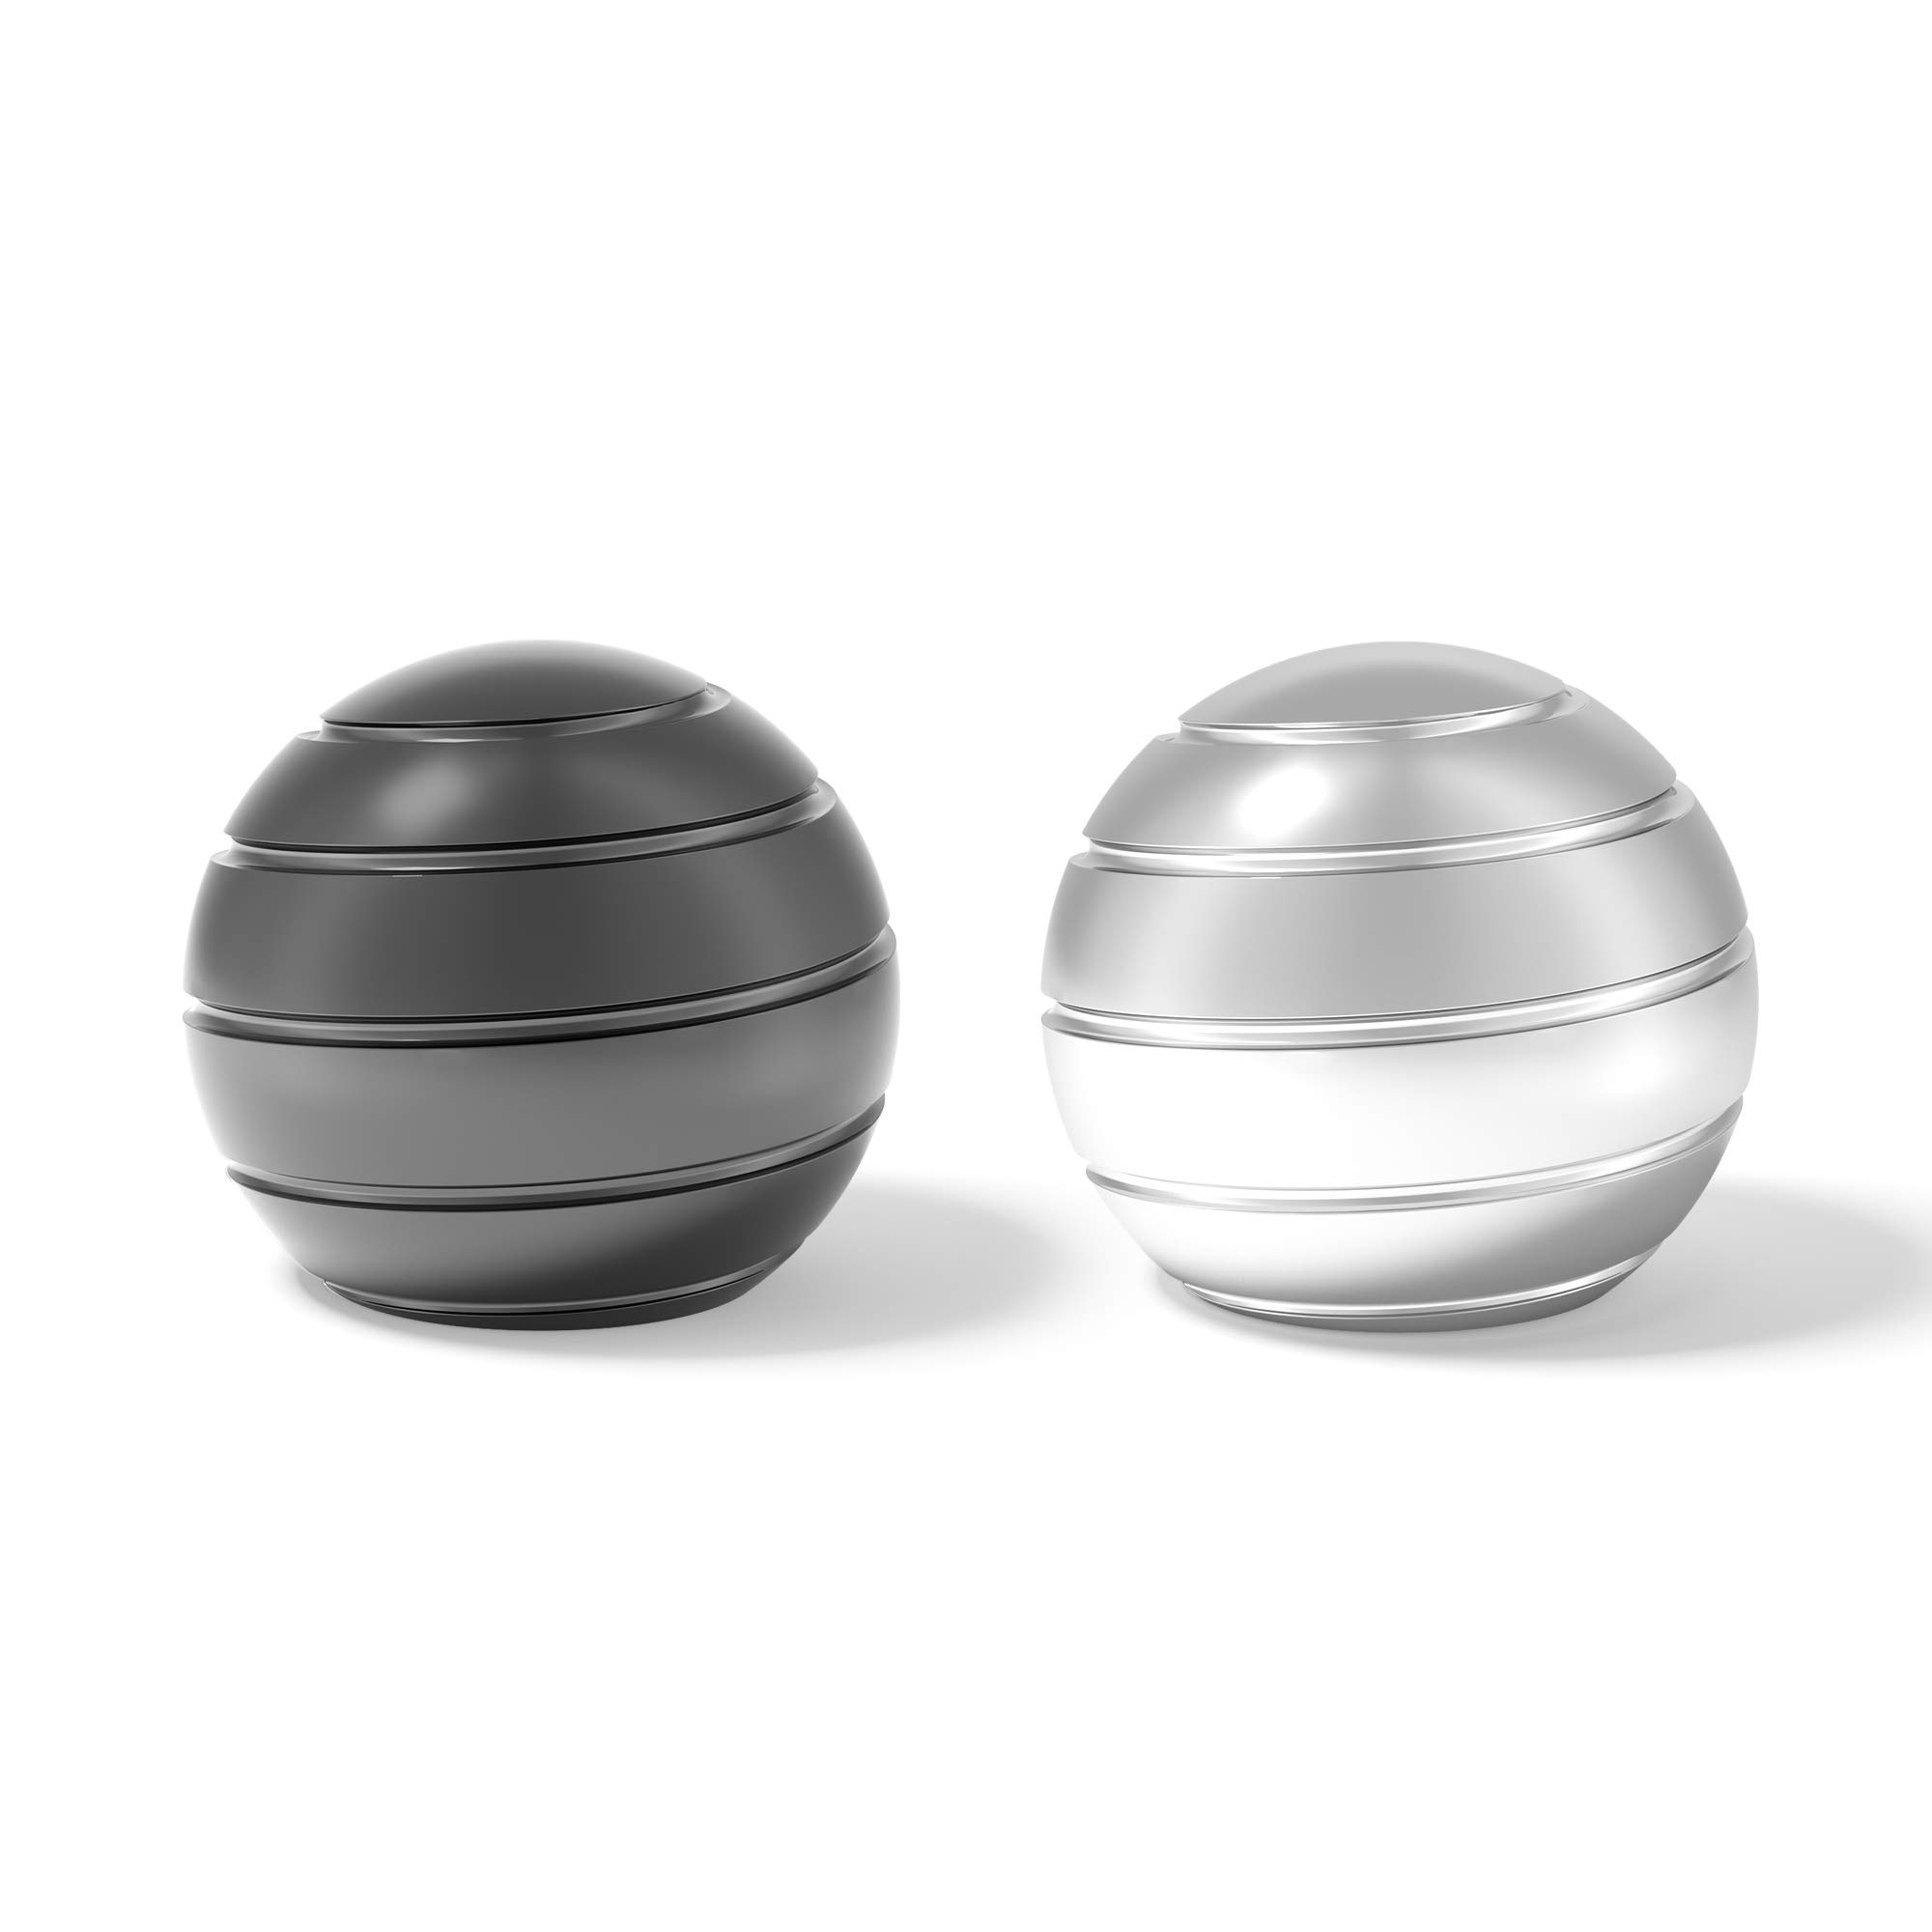 Vefindor Fidget Stress Relief Kinetic Desk Toys for Office for Adults for Kids, Optical Illusions Inspire Creativity Spinner Balls (Gray Silver) by Vefindor